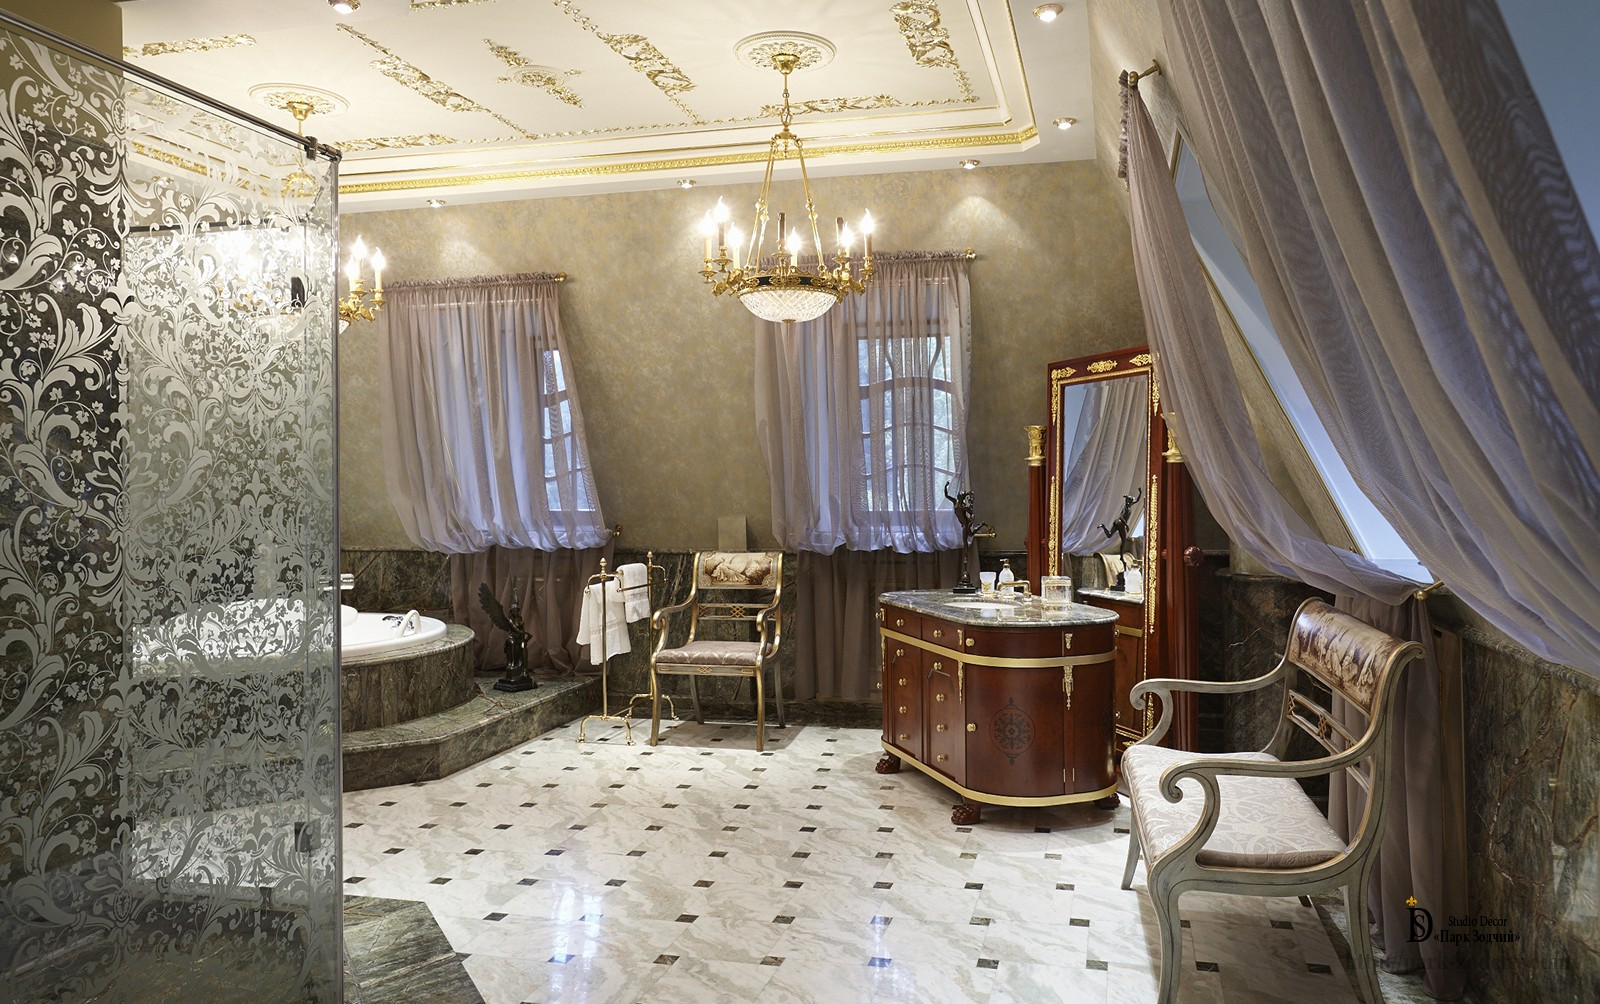 Luxury bathroom with gilded mouldings